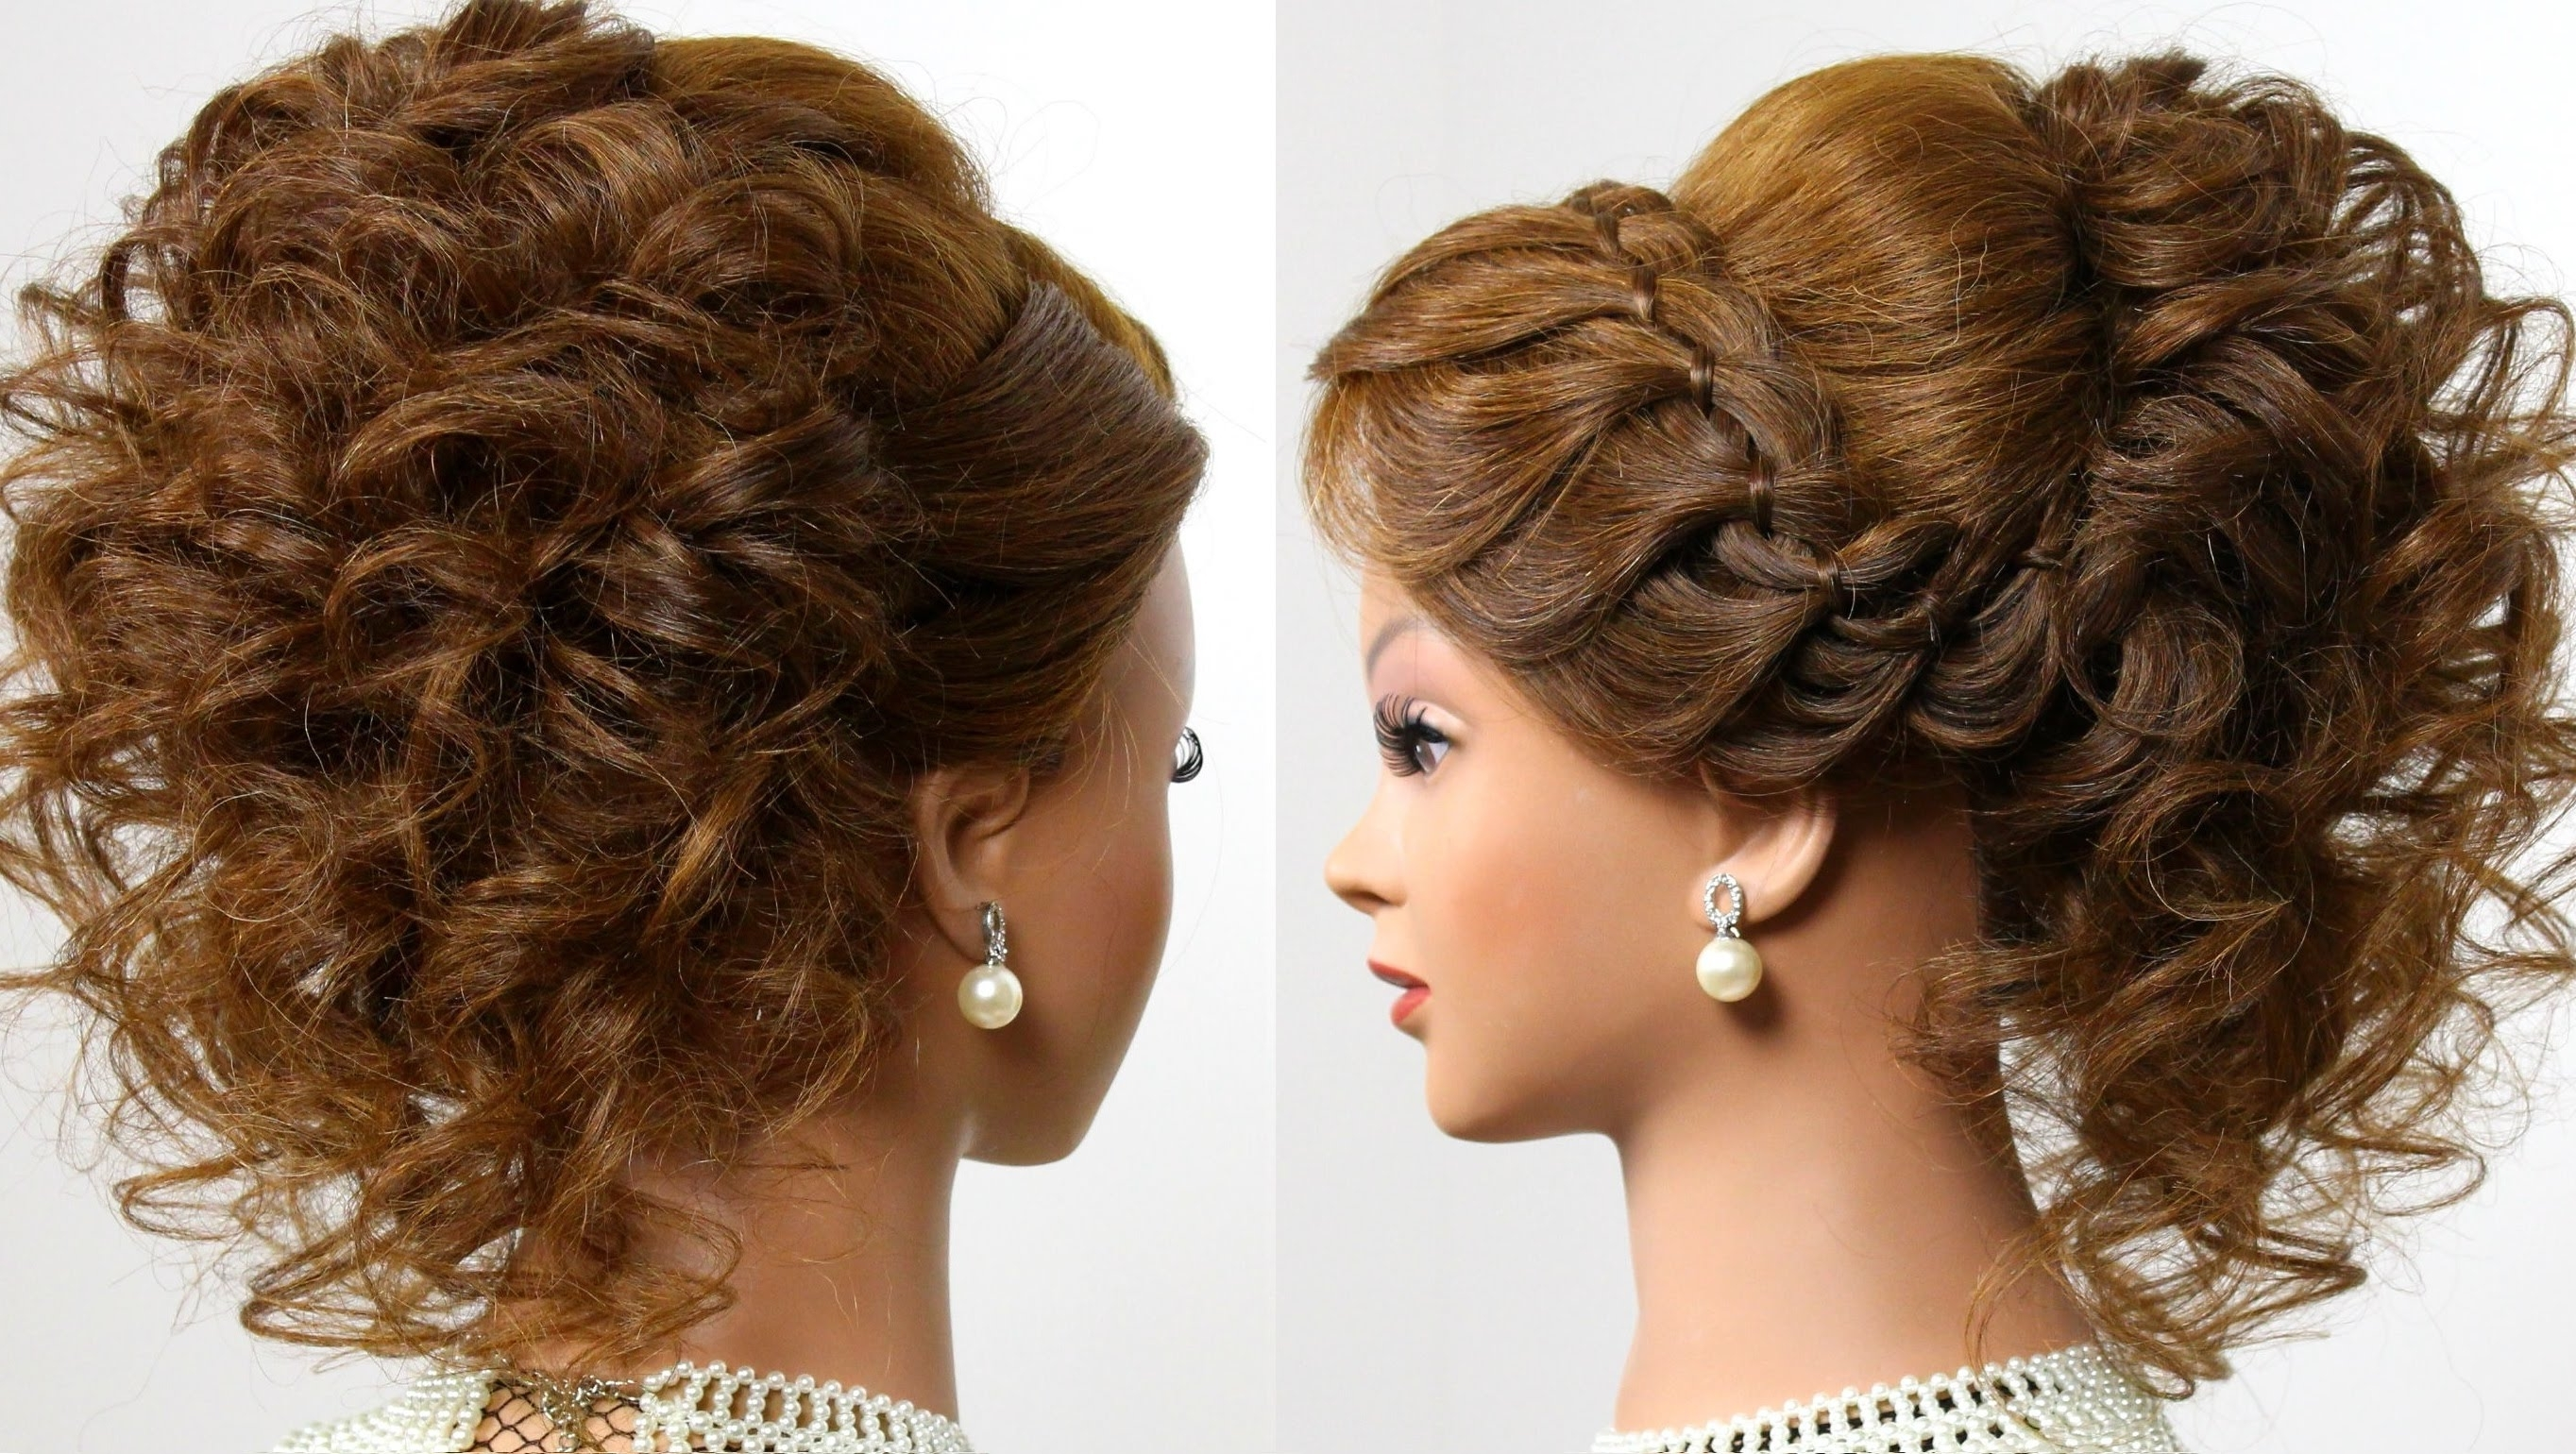 Hairstyles For Long Hair Wedding Bridesmaid – Hairstyle For Women & Man Intended For Newest Wedding Hairstyles For Bridesmaids With Long Hair (View 7 of 15)